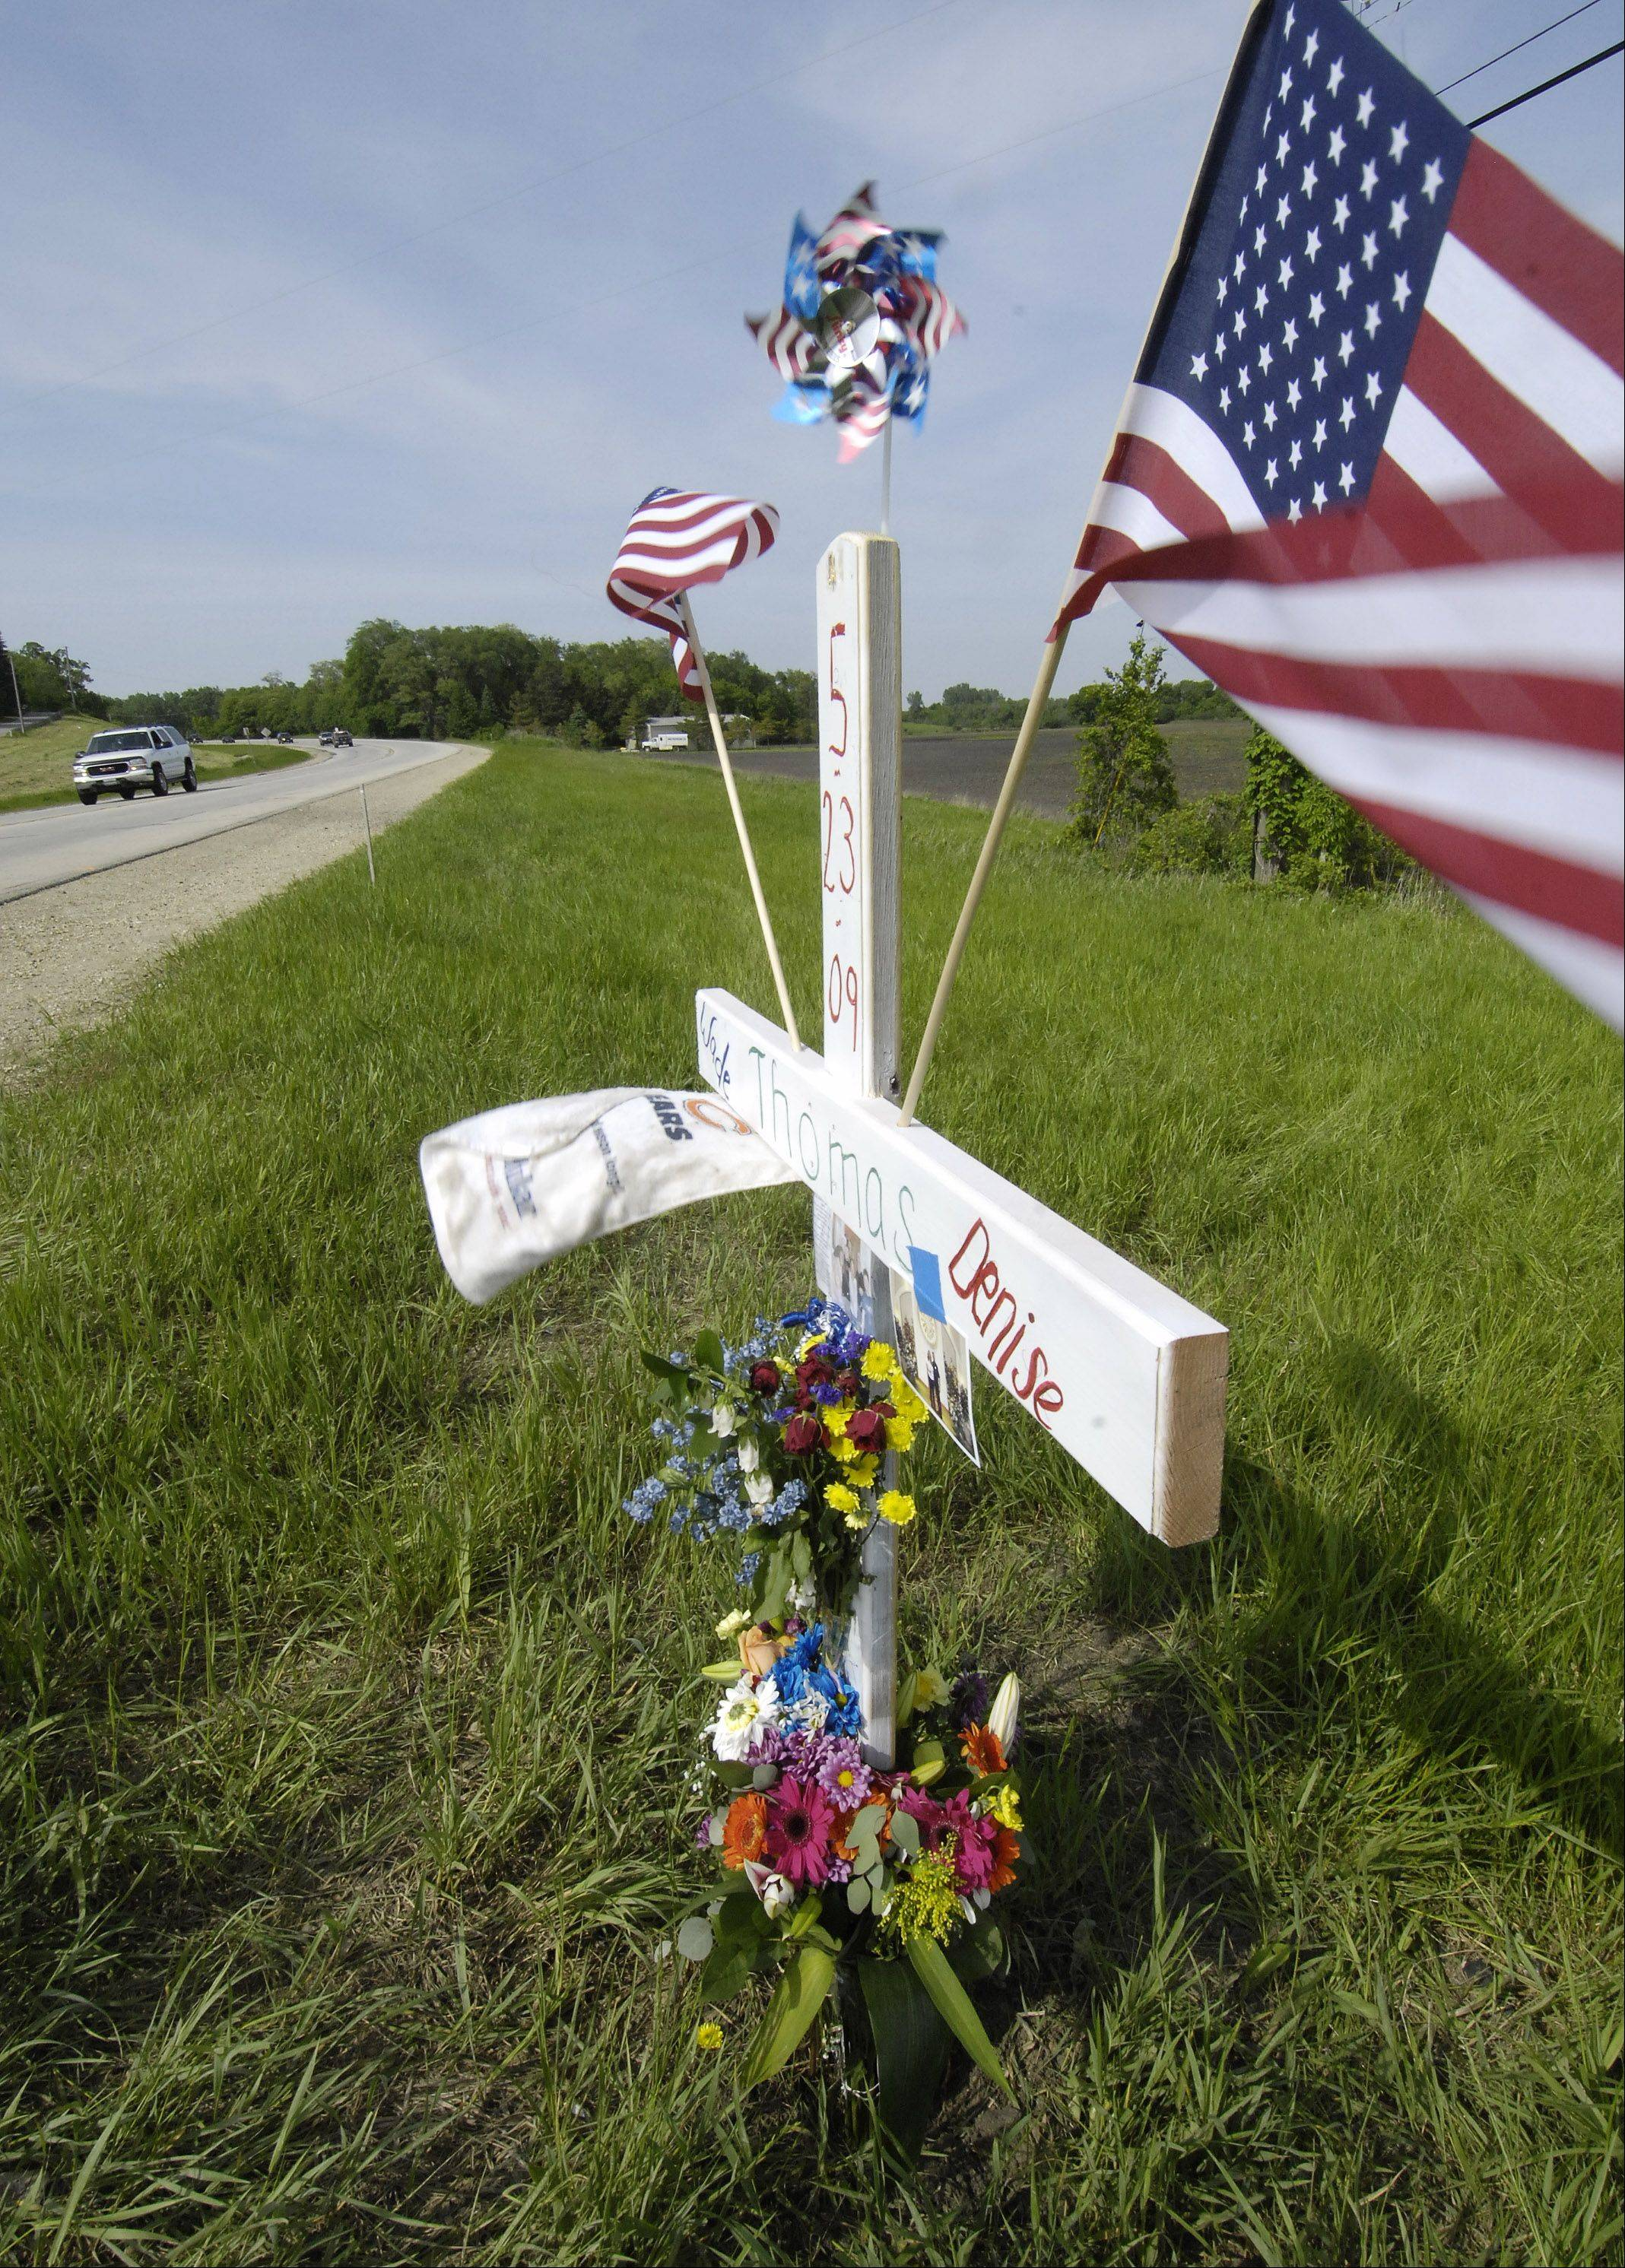 JOHN STARKS/jstarks@dailyherald.comA wooden cross with American flags stands for Wade and Denise Thomas of St. Charles, who were killed in a May 2009 accident on Route 47 near Elburn.